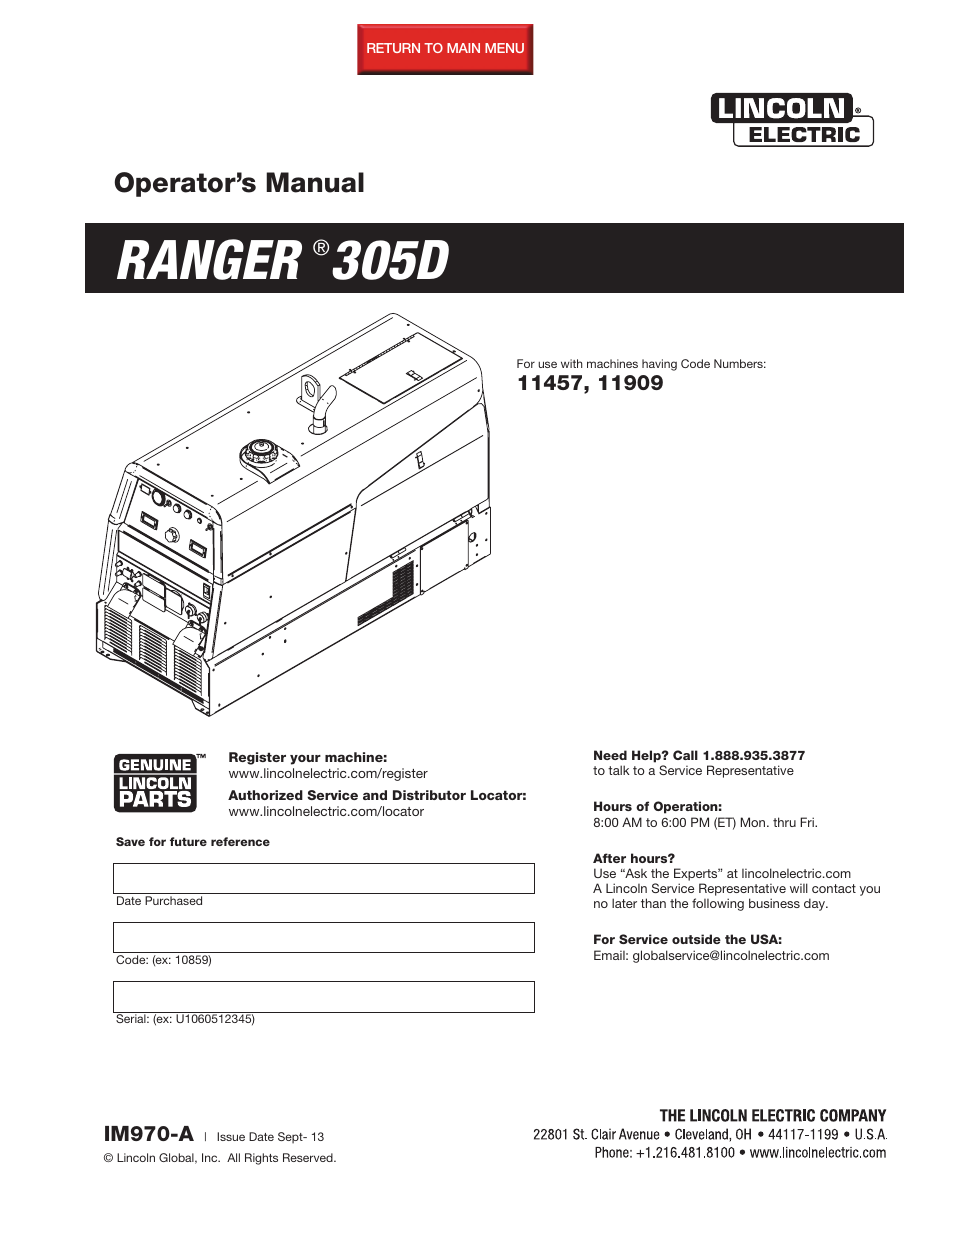 lincoln sae-400, lincoln commander 300, lincoln lincwelder 225, lincoln pipeliner, lincoln electric welding stickers, on lincoln vantage 300 wiring diagram